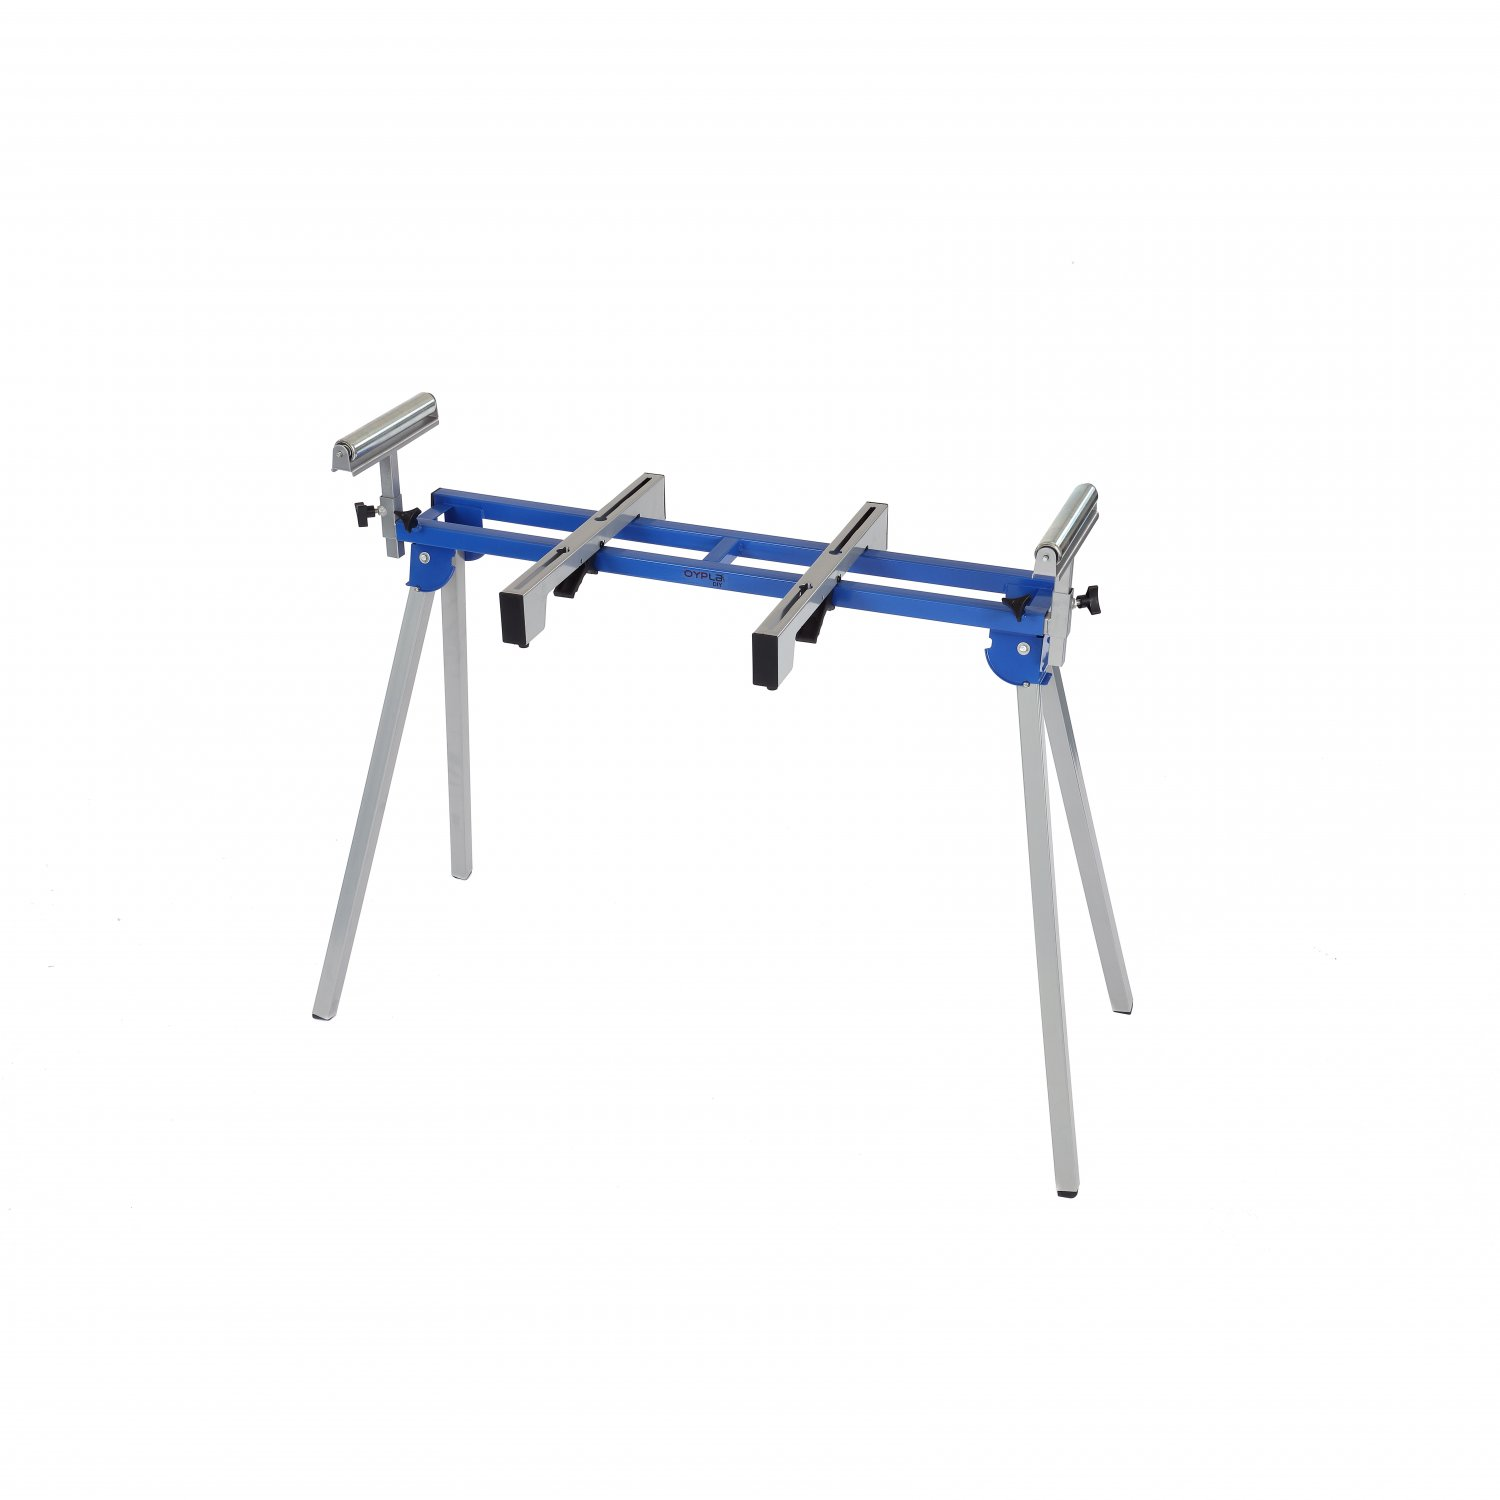 Universal Mitre Saw Stand with Extending Support Arms & Rollers